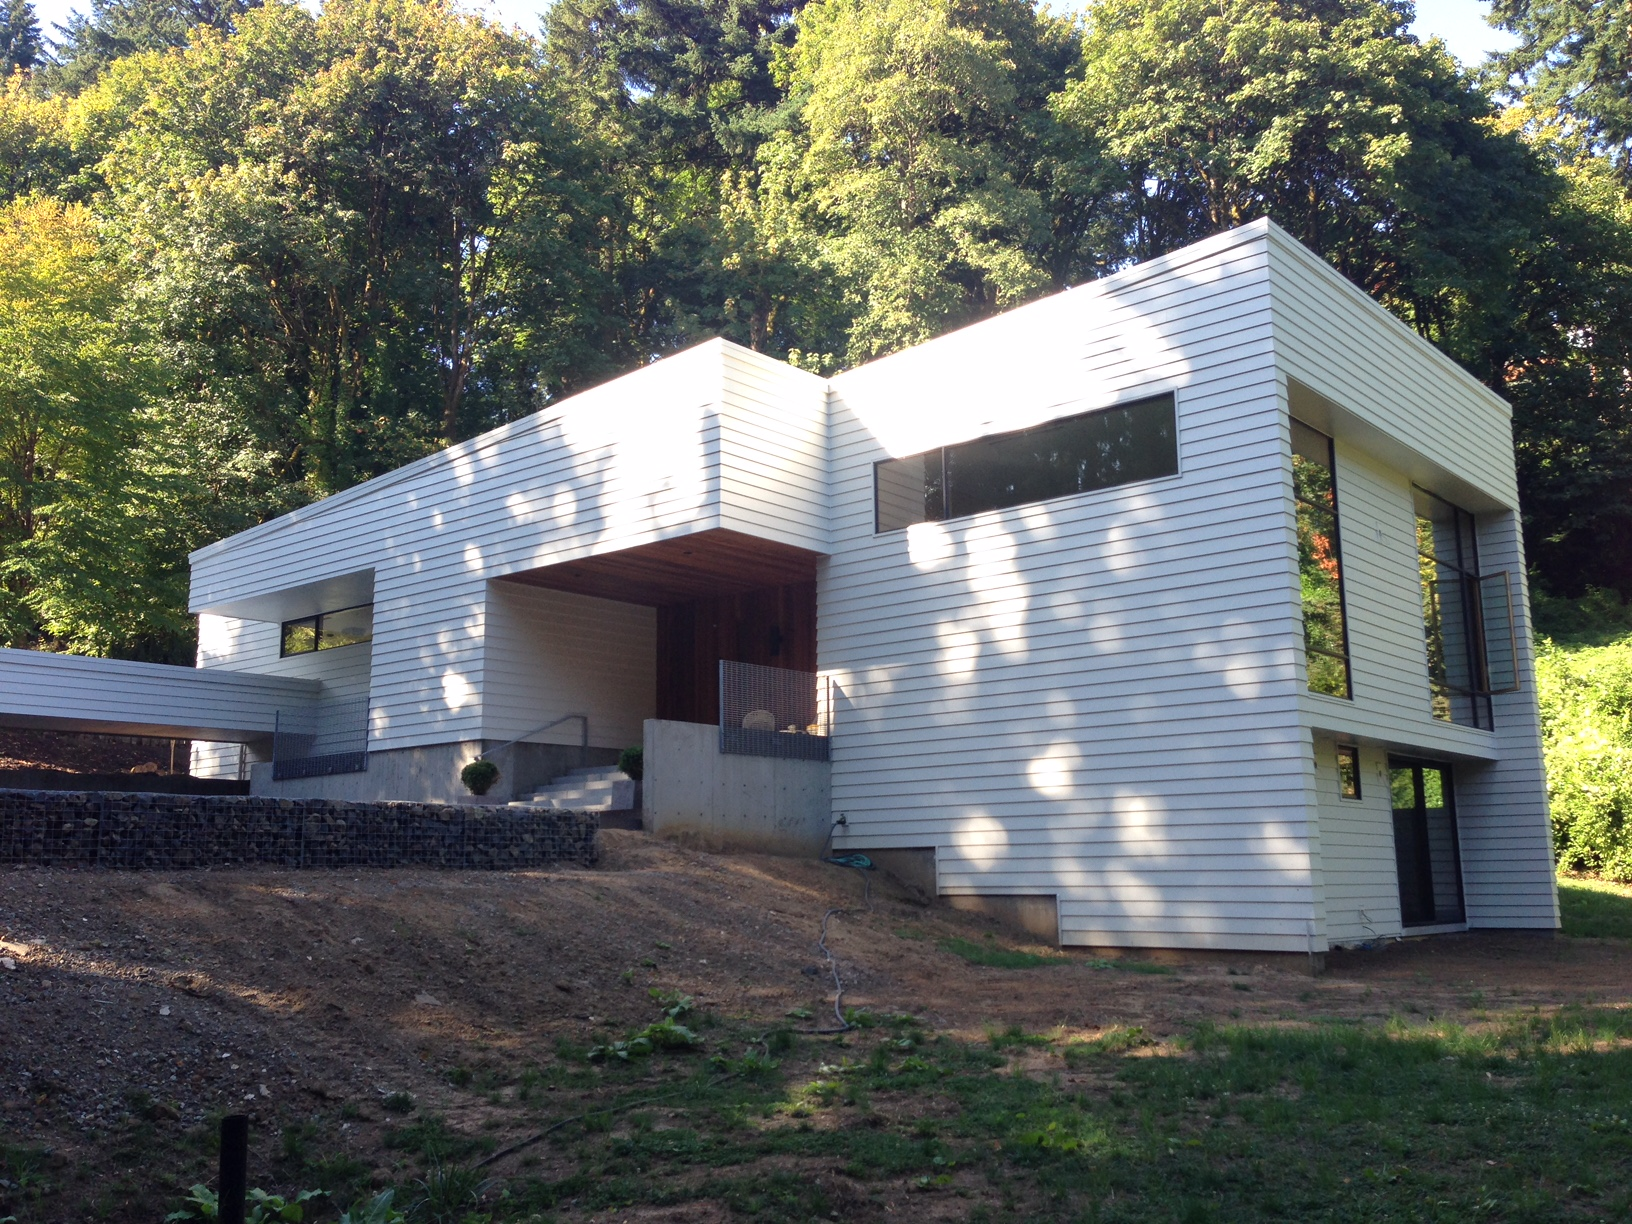 Get an inside look at eight amazing modern homes in portland next weekend - Moa architectuur ...